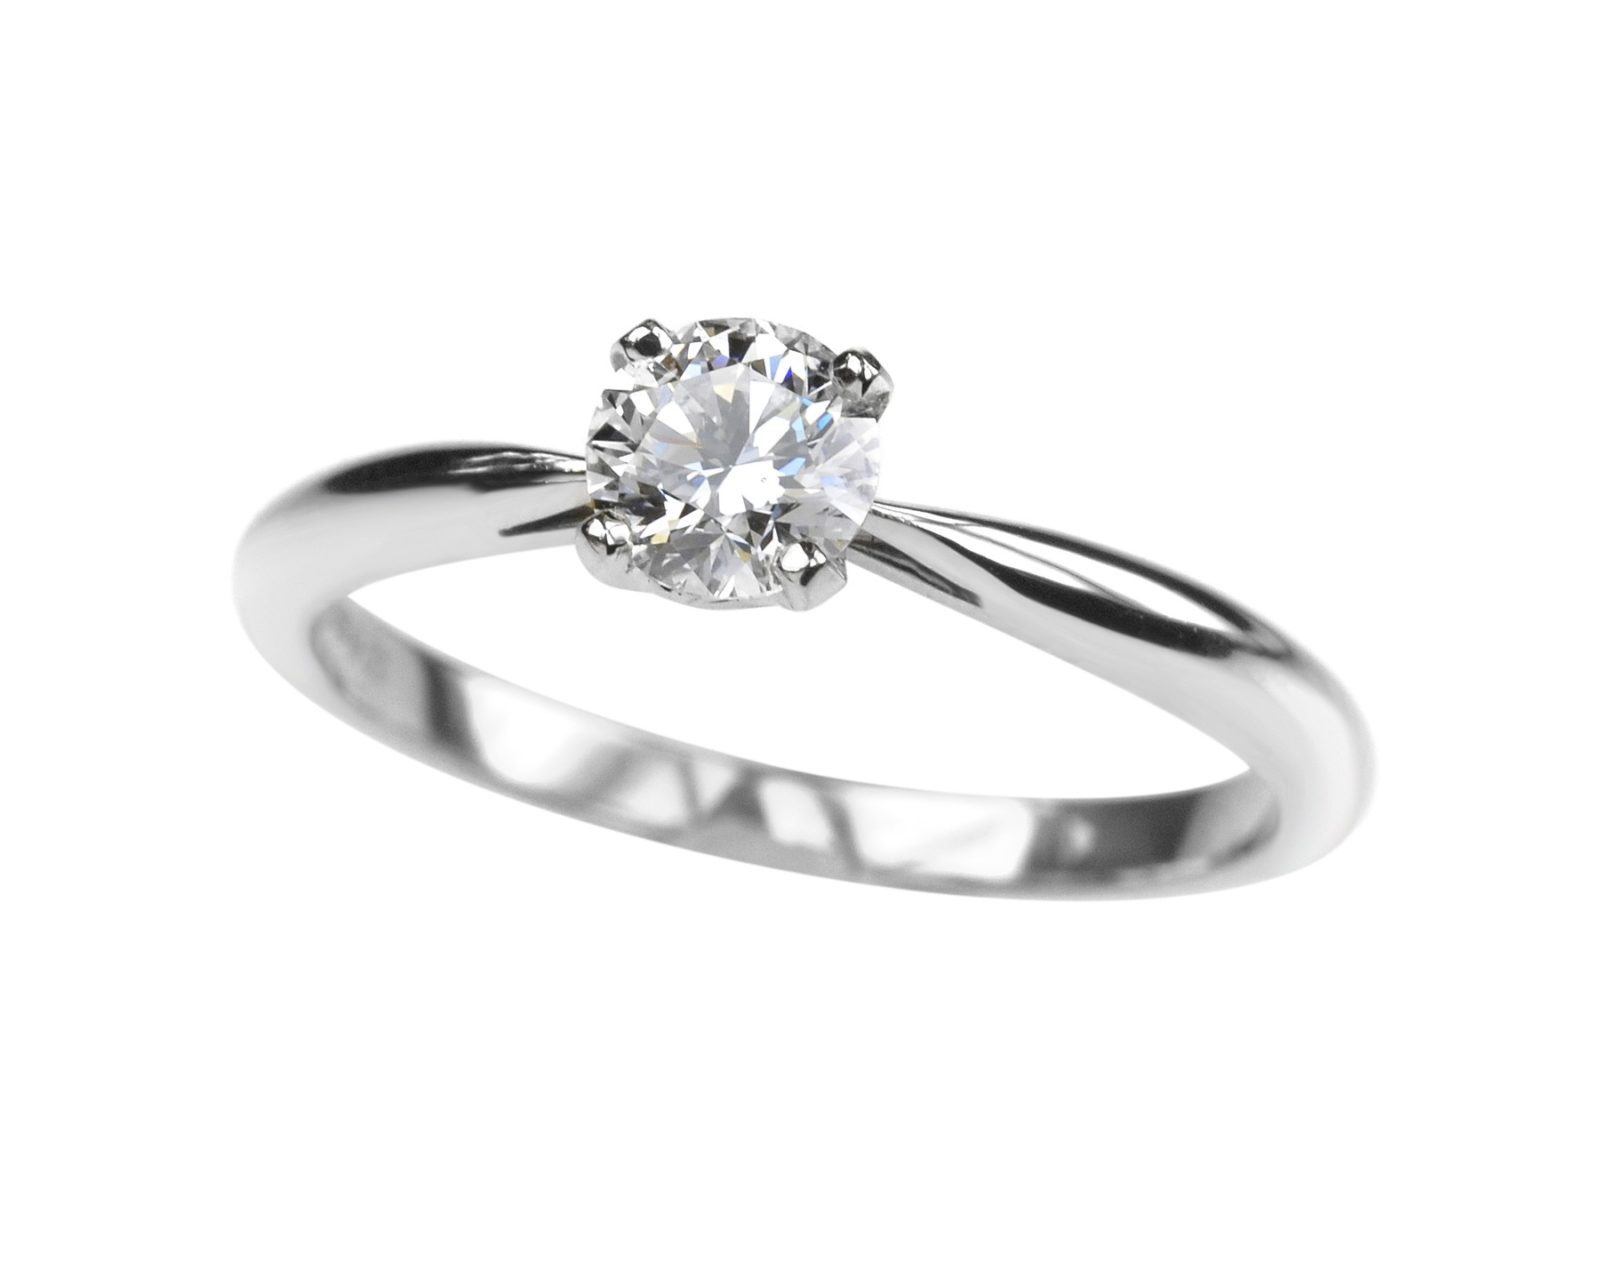 Engagement ring ideas socially fabulous fabulously social for Dimond wedding ring